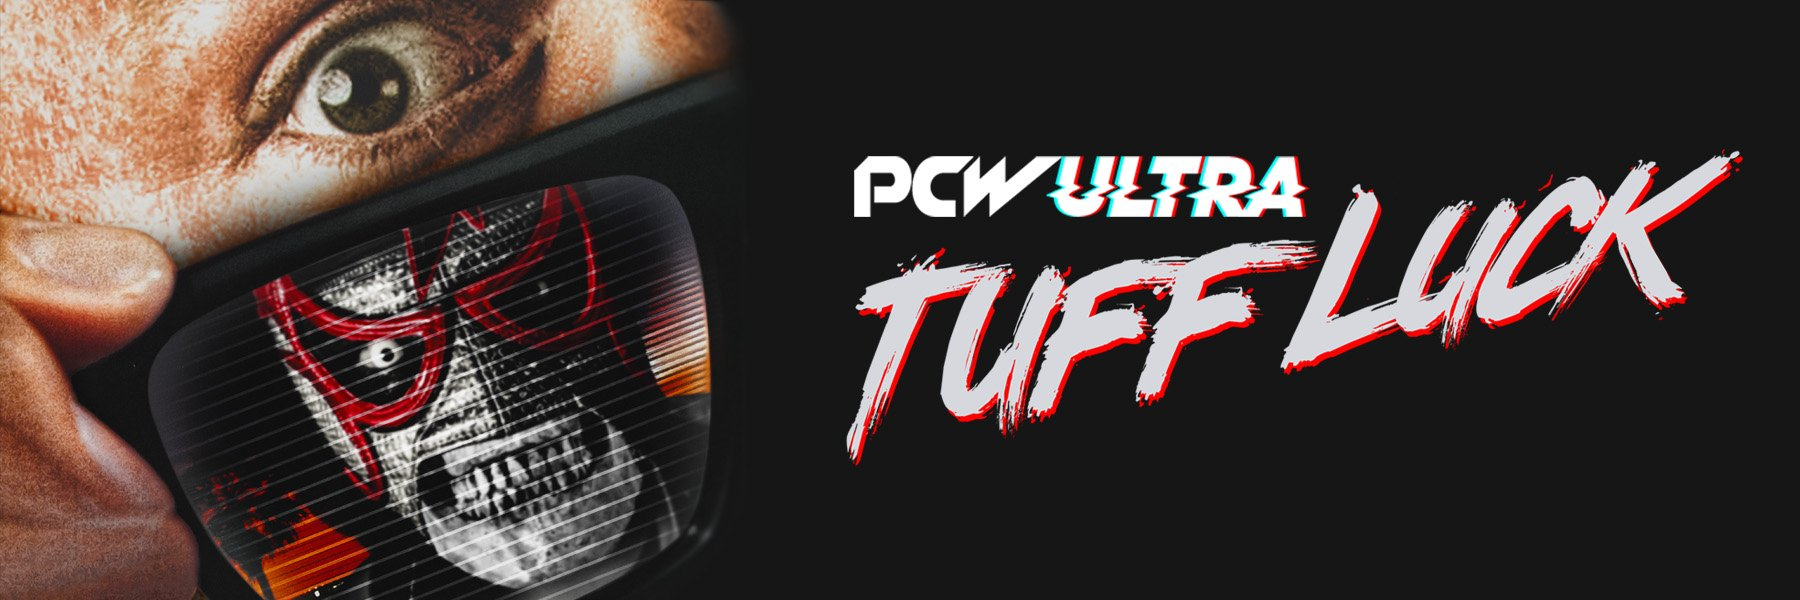 PCW ULTRA | TUFF LUCK: Subscribe $4.99 mo. // Rent $2.99 // Buy $9.99